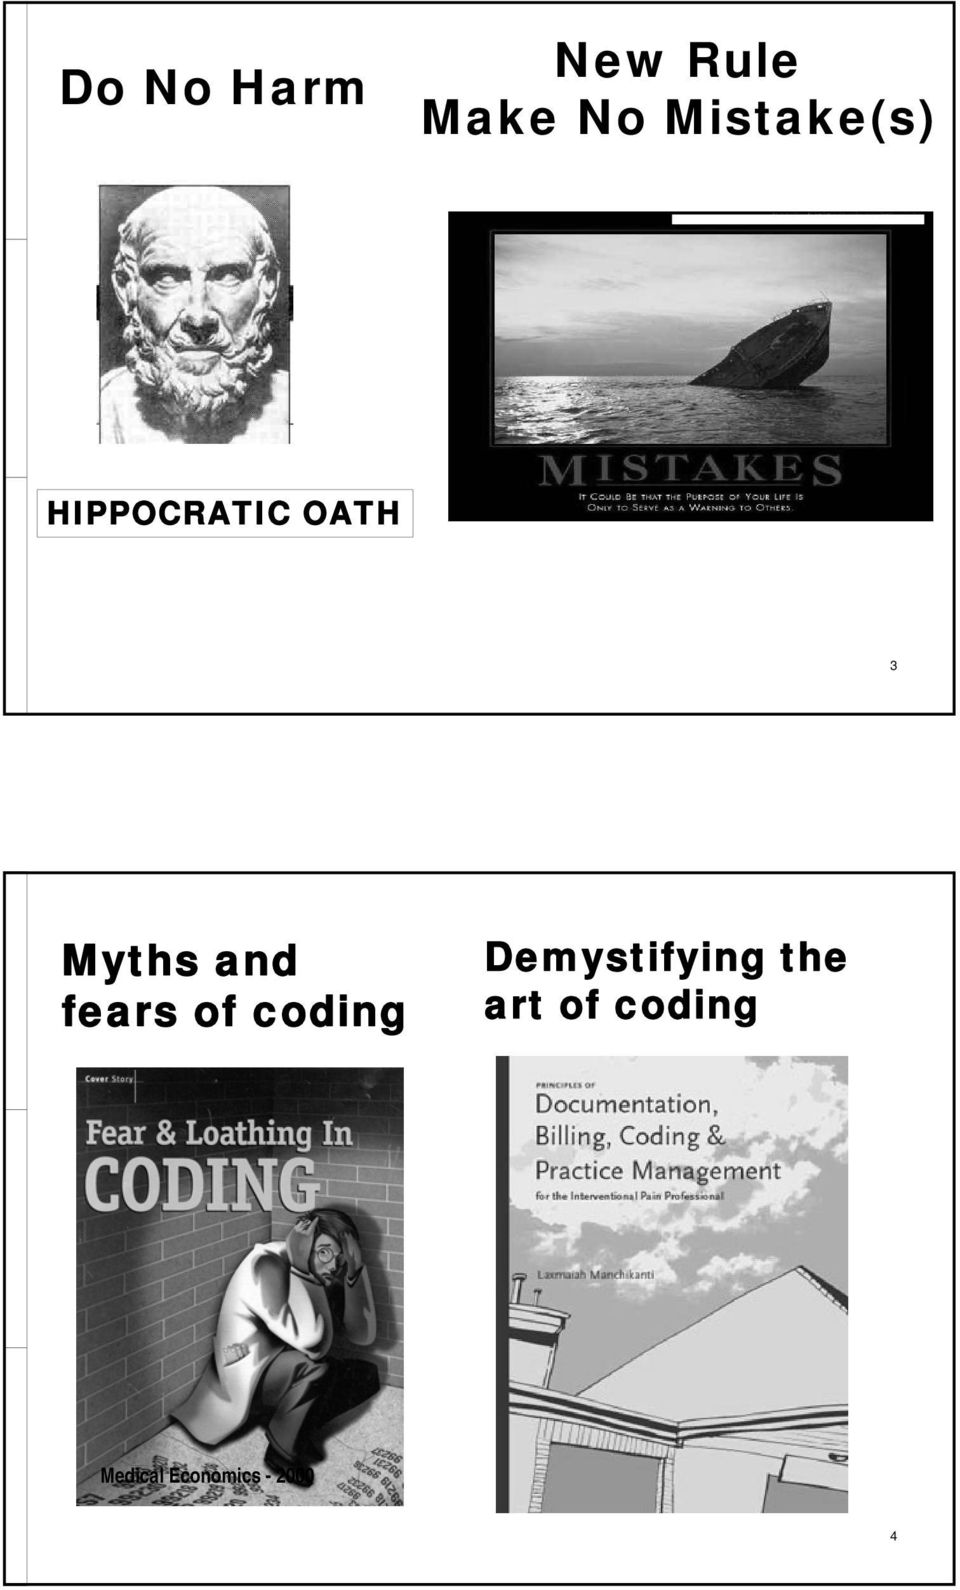 and fears of coding Demystifying